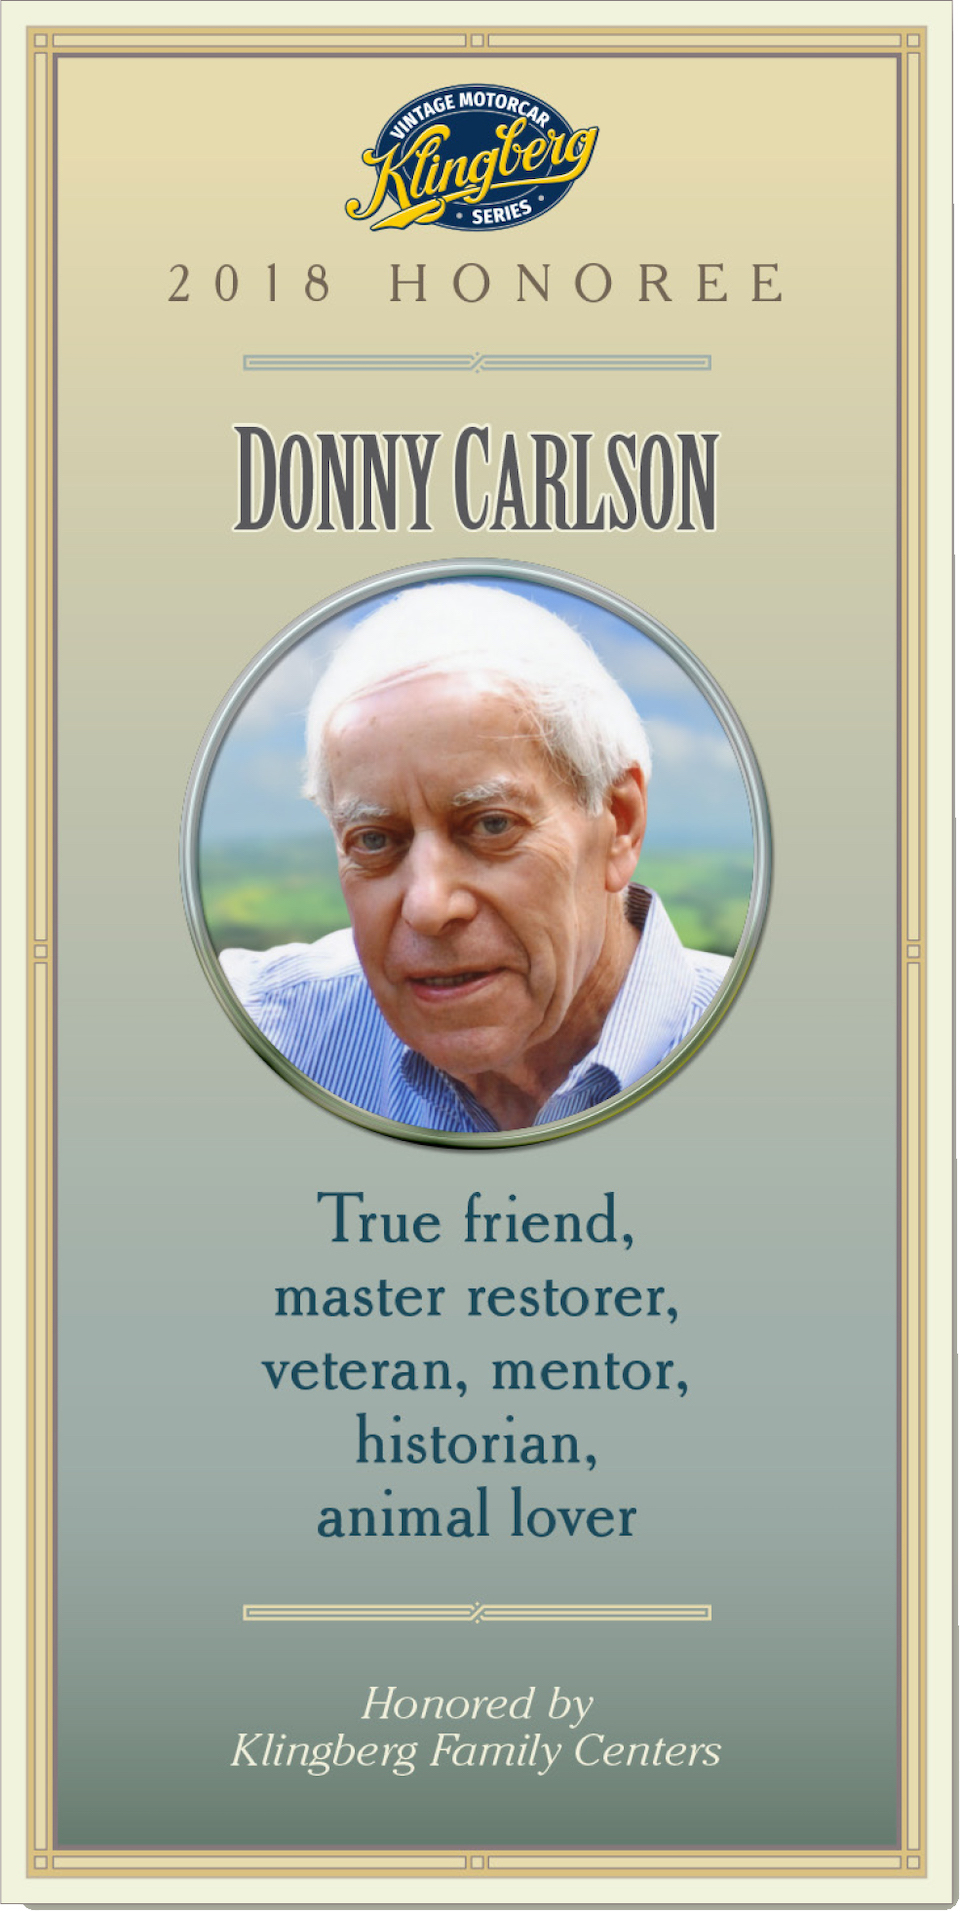 honor-donny-carlson